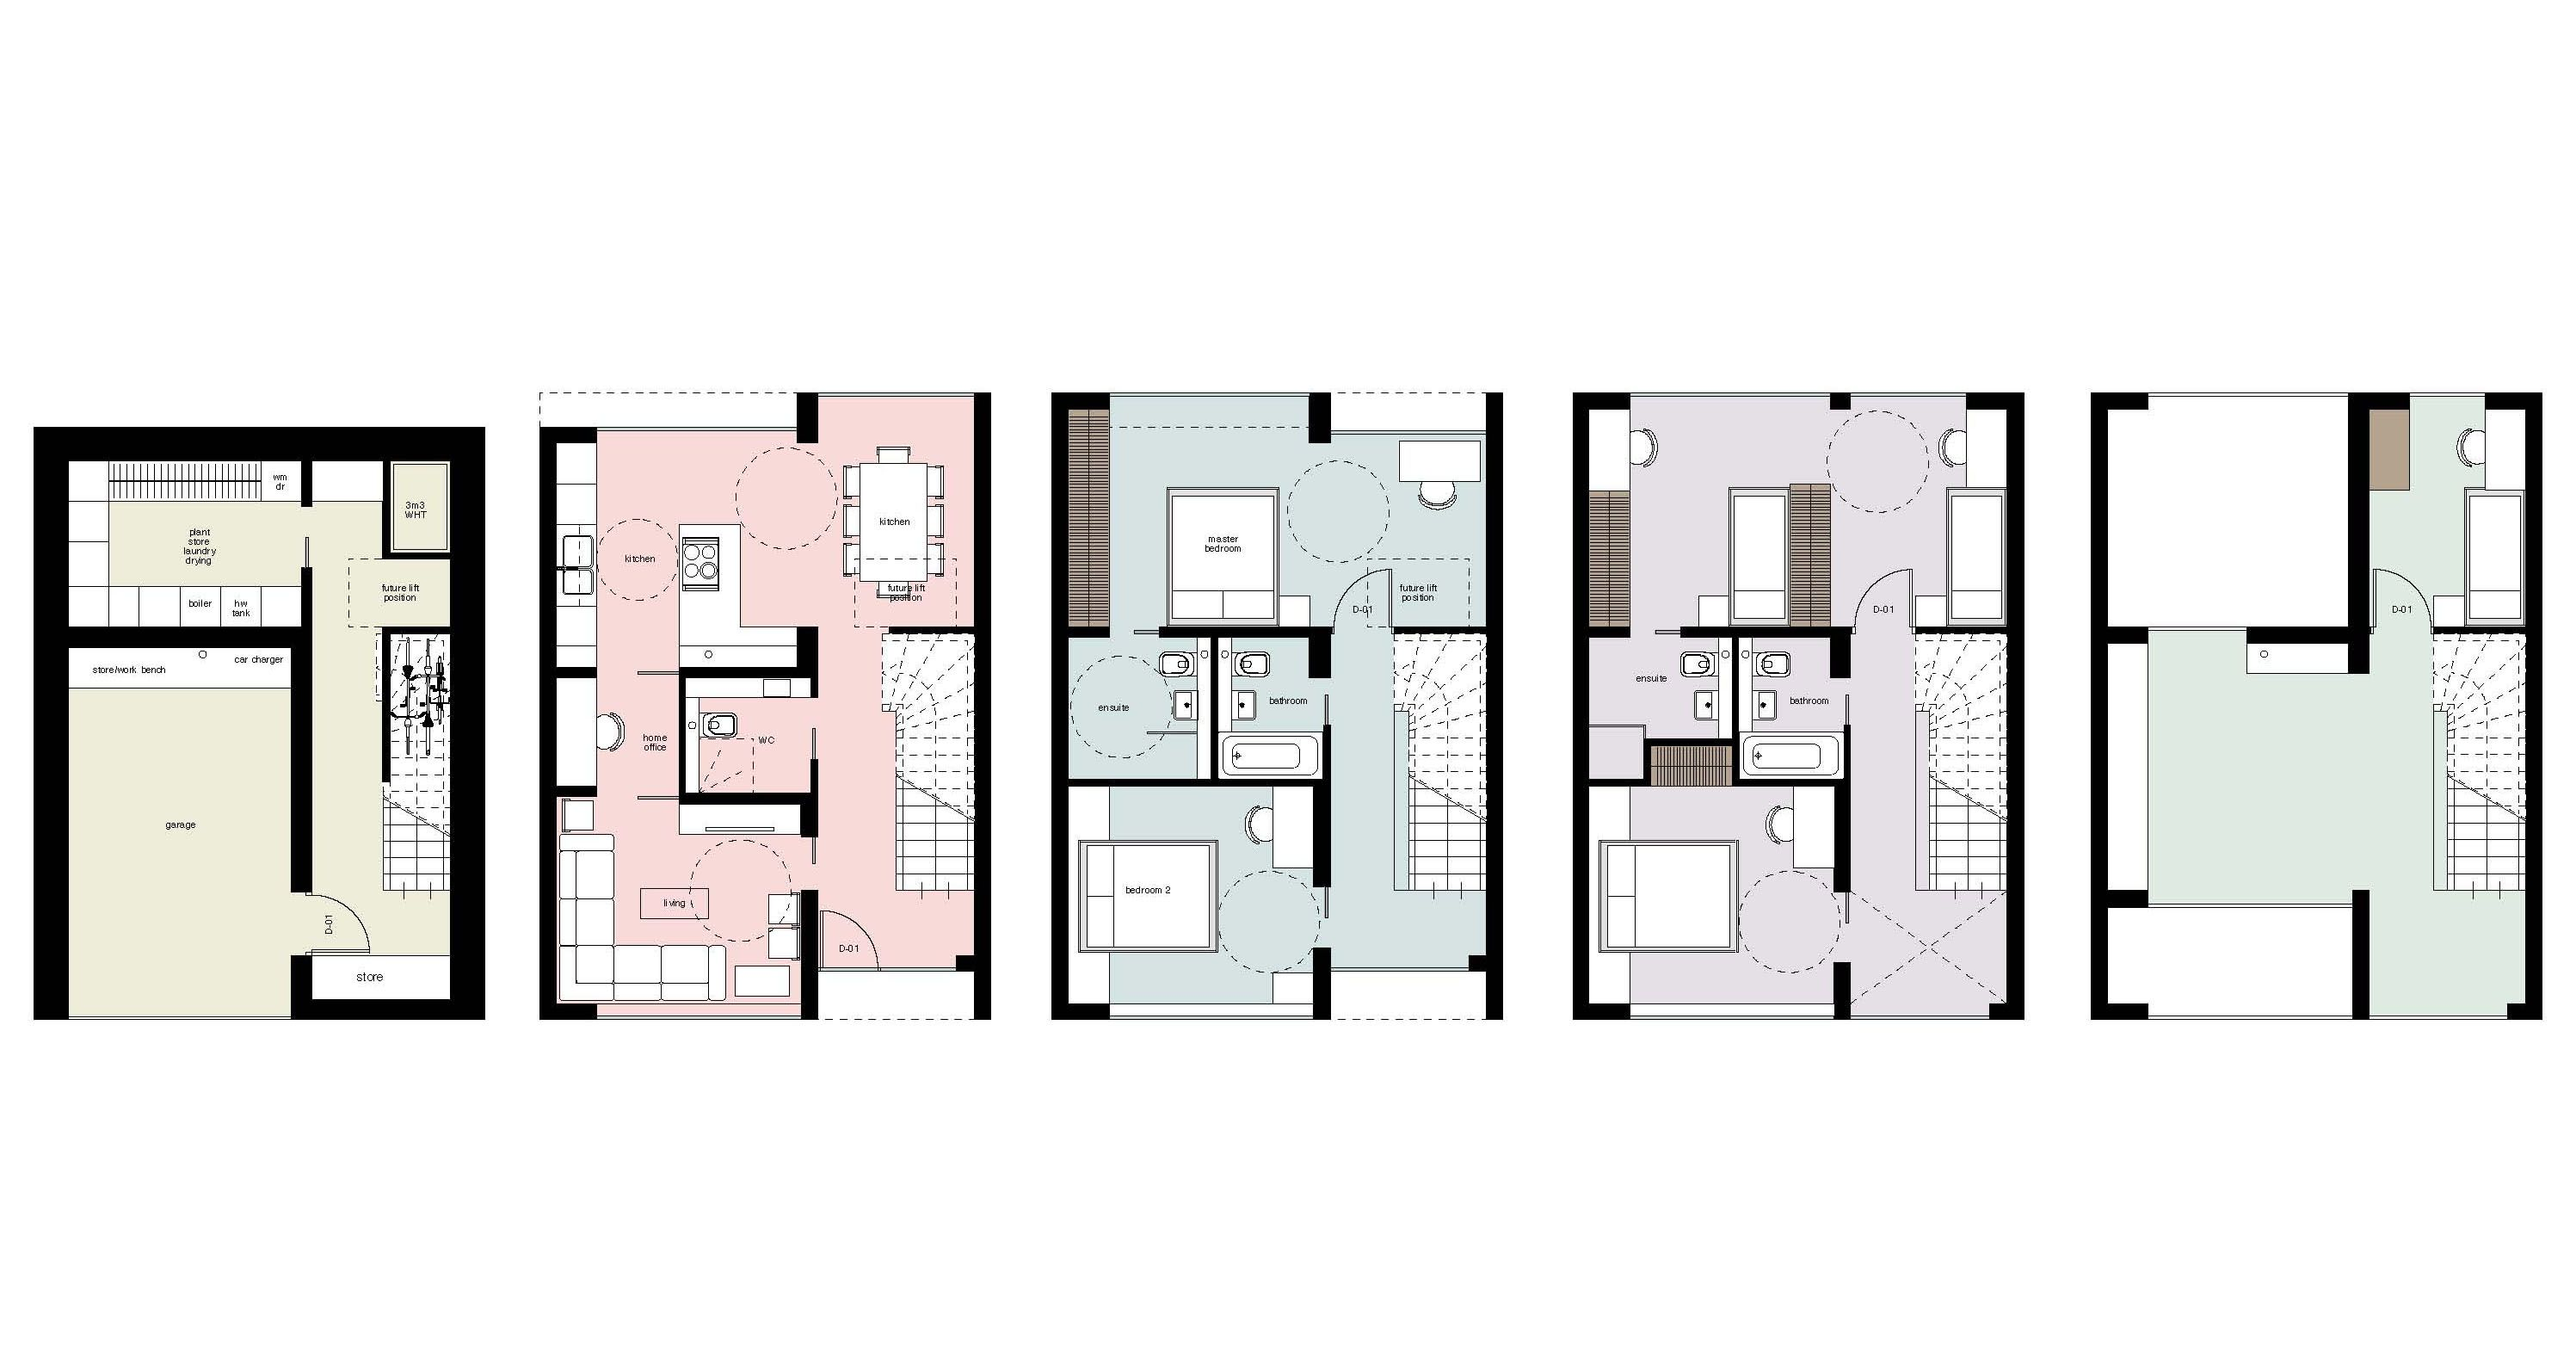 tomorrows townhouse concept and masterplan - Nicolas Tye Architects